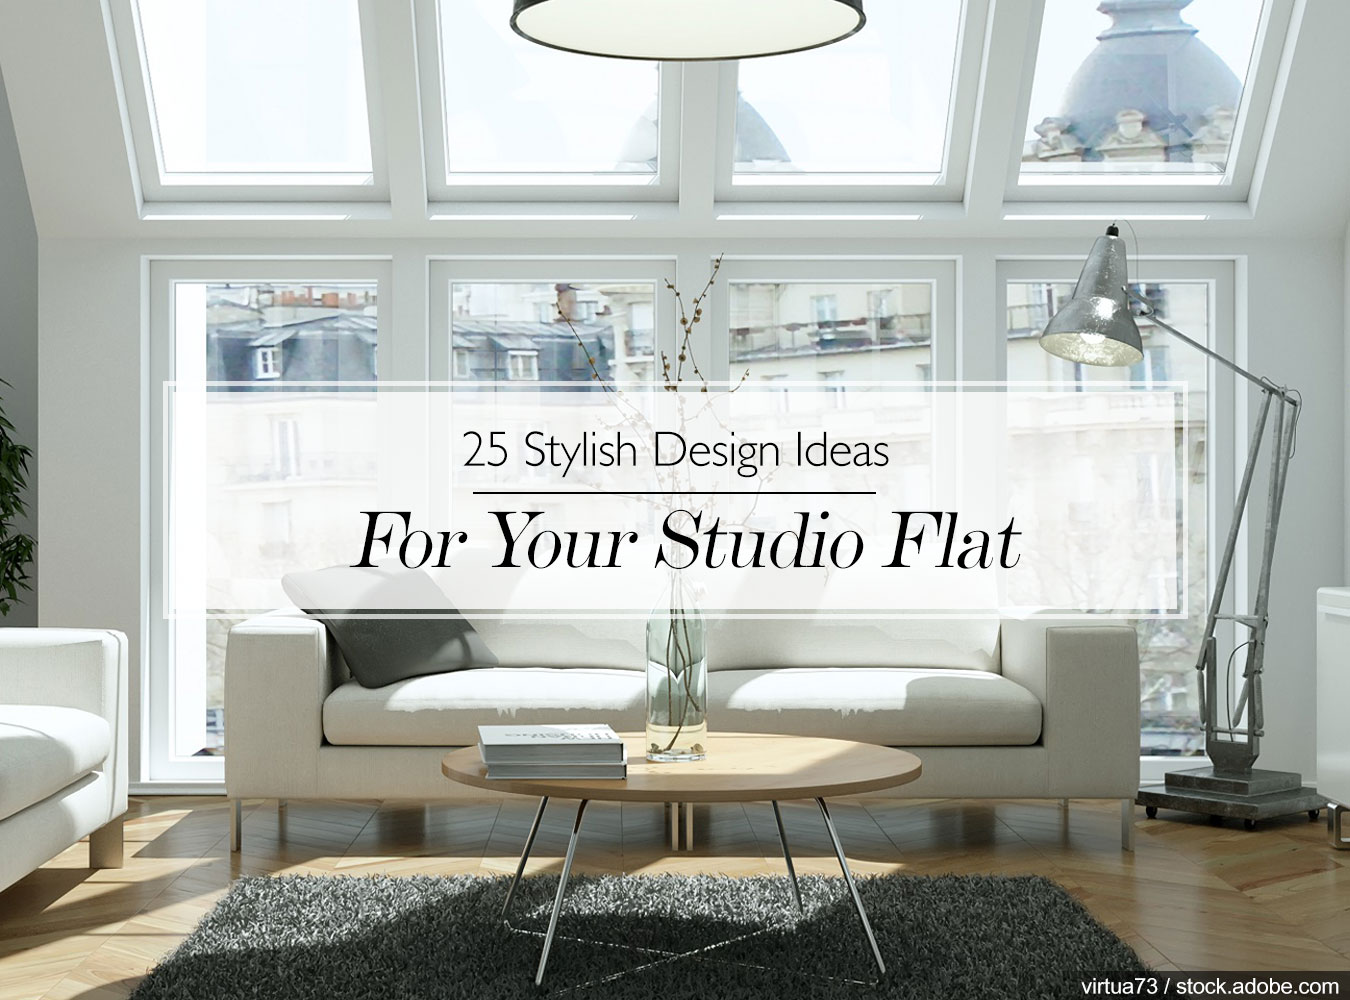 25 Stylish Design Ideas For Your Studio Flat The Luxpad